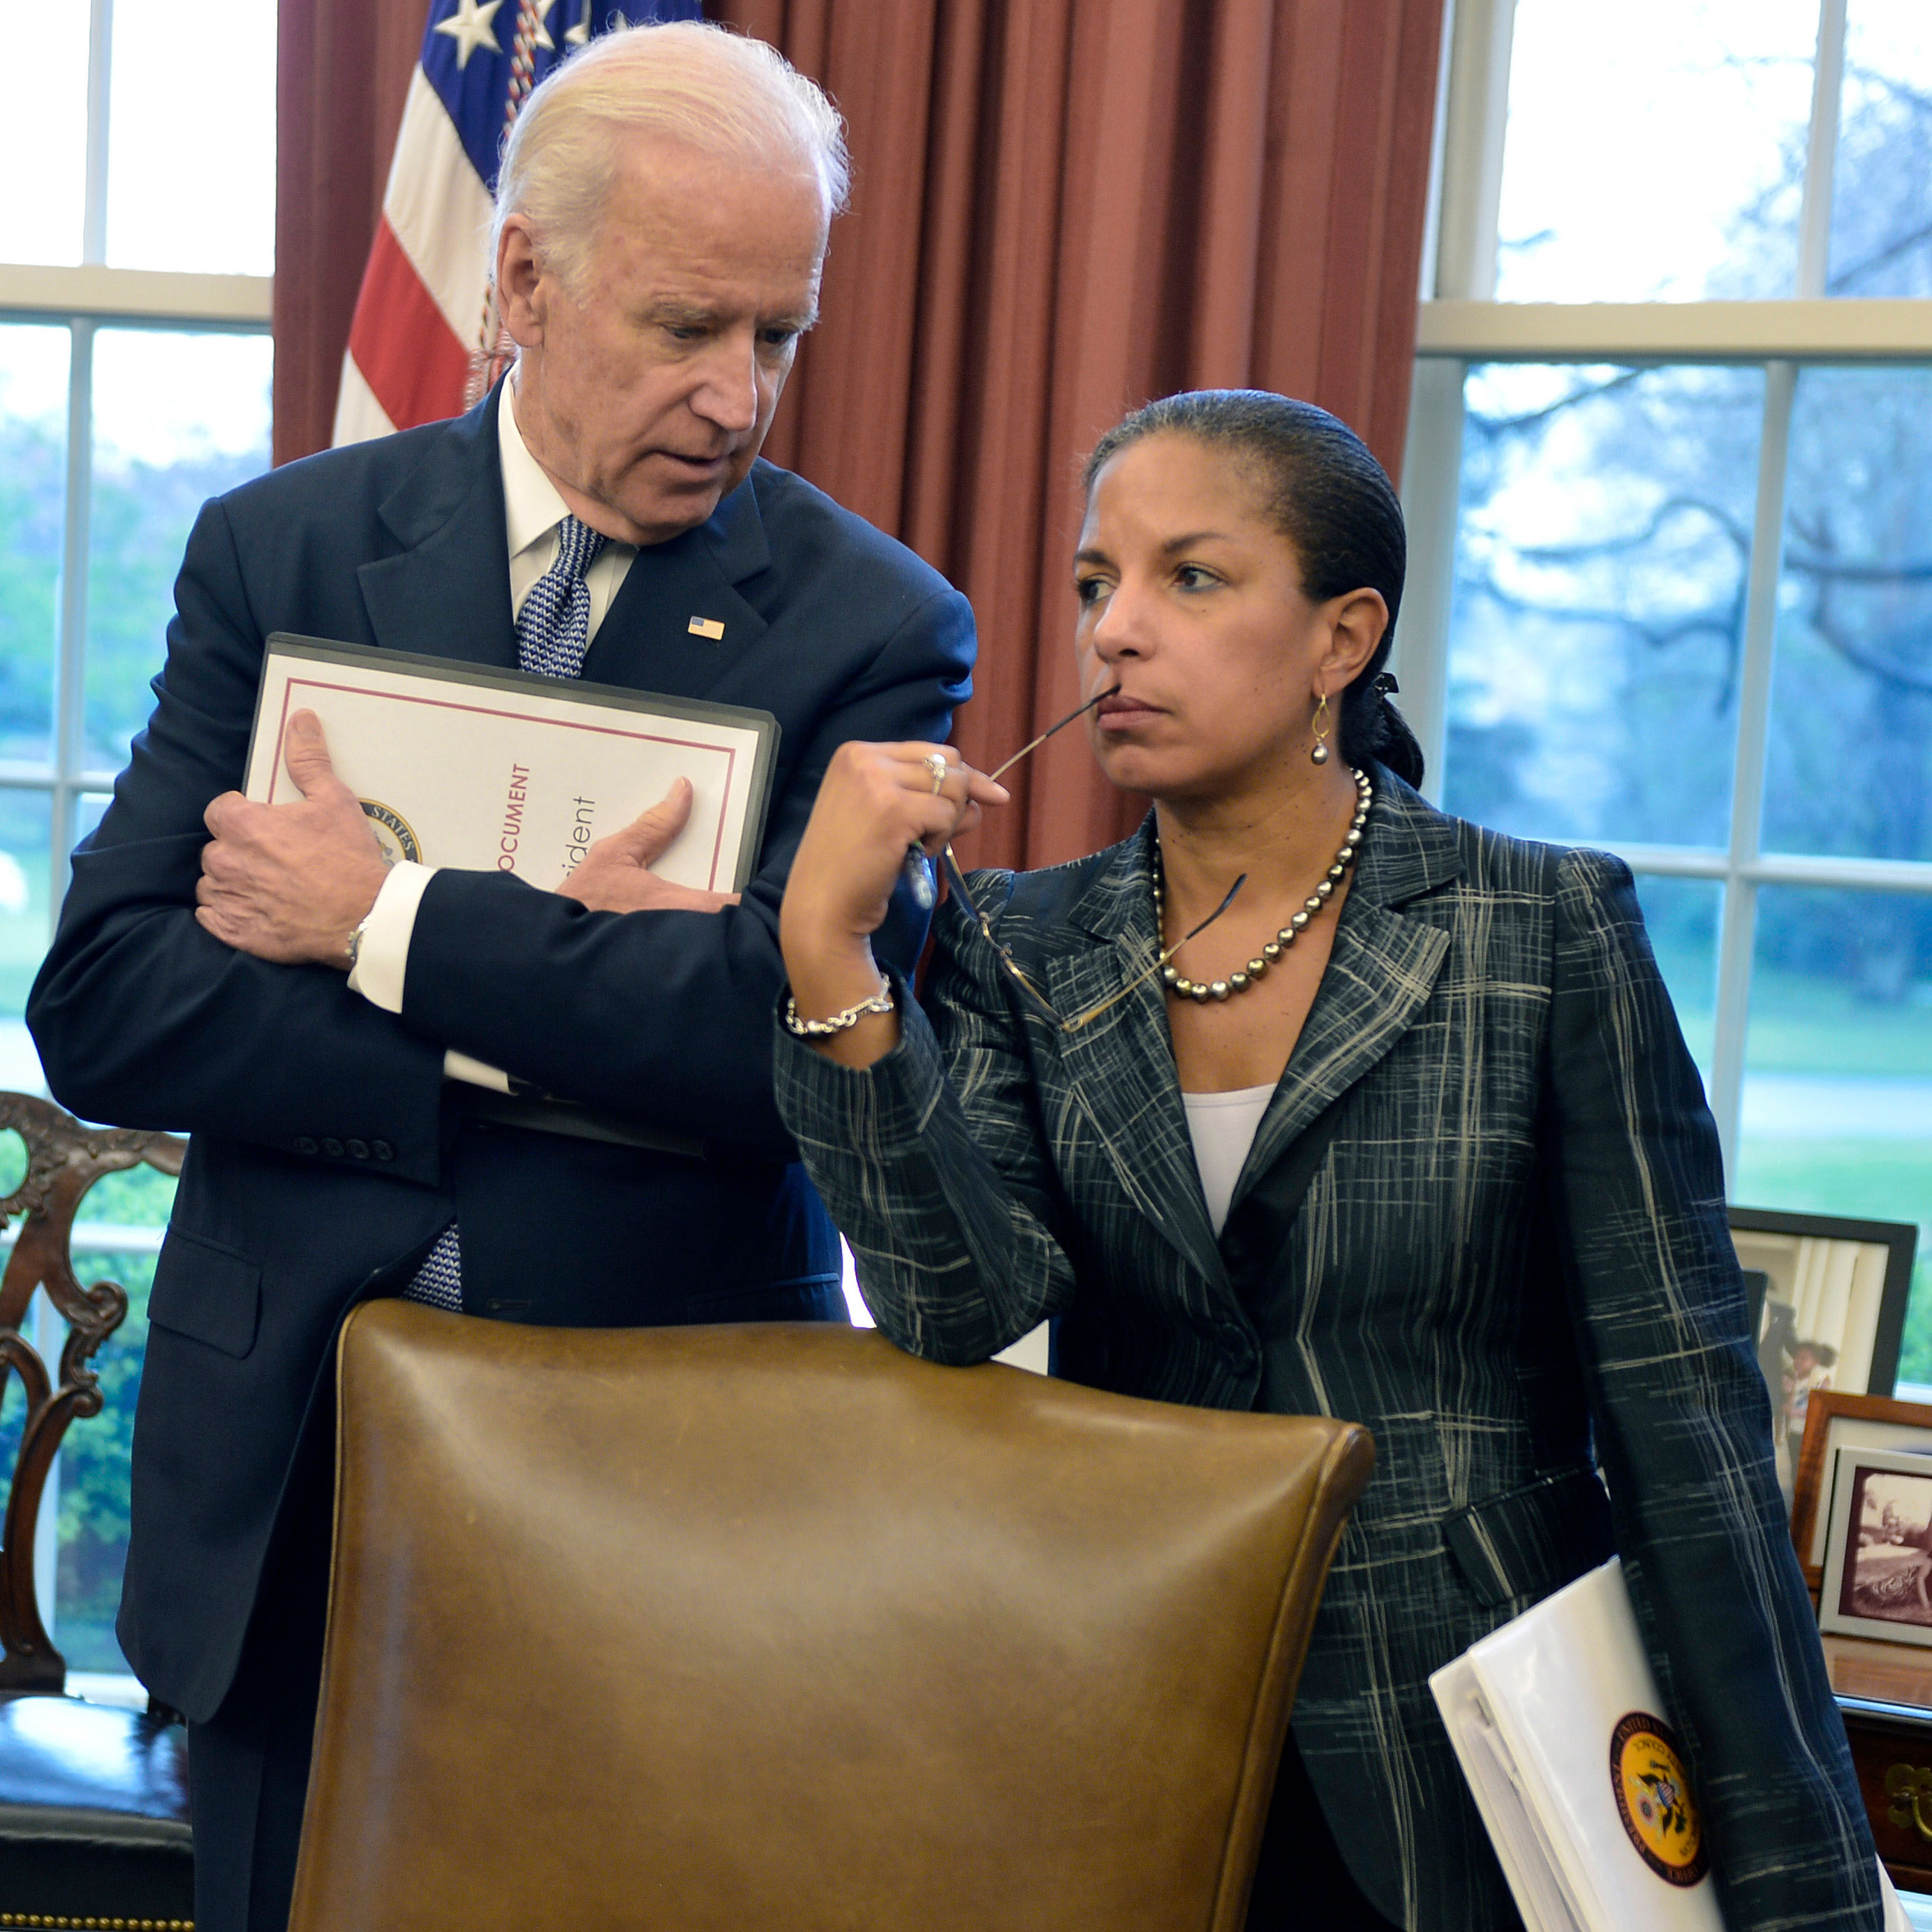 Then-Vice President Joe Biden and then-National Security Advisor Susan Rice speak together during a press briefing in the Oval Office of the White House in 2015.